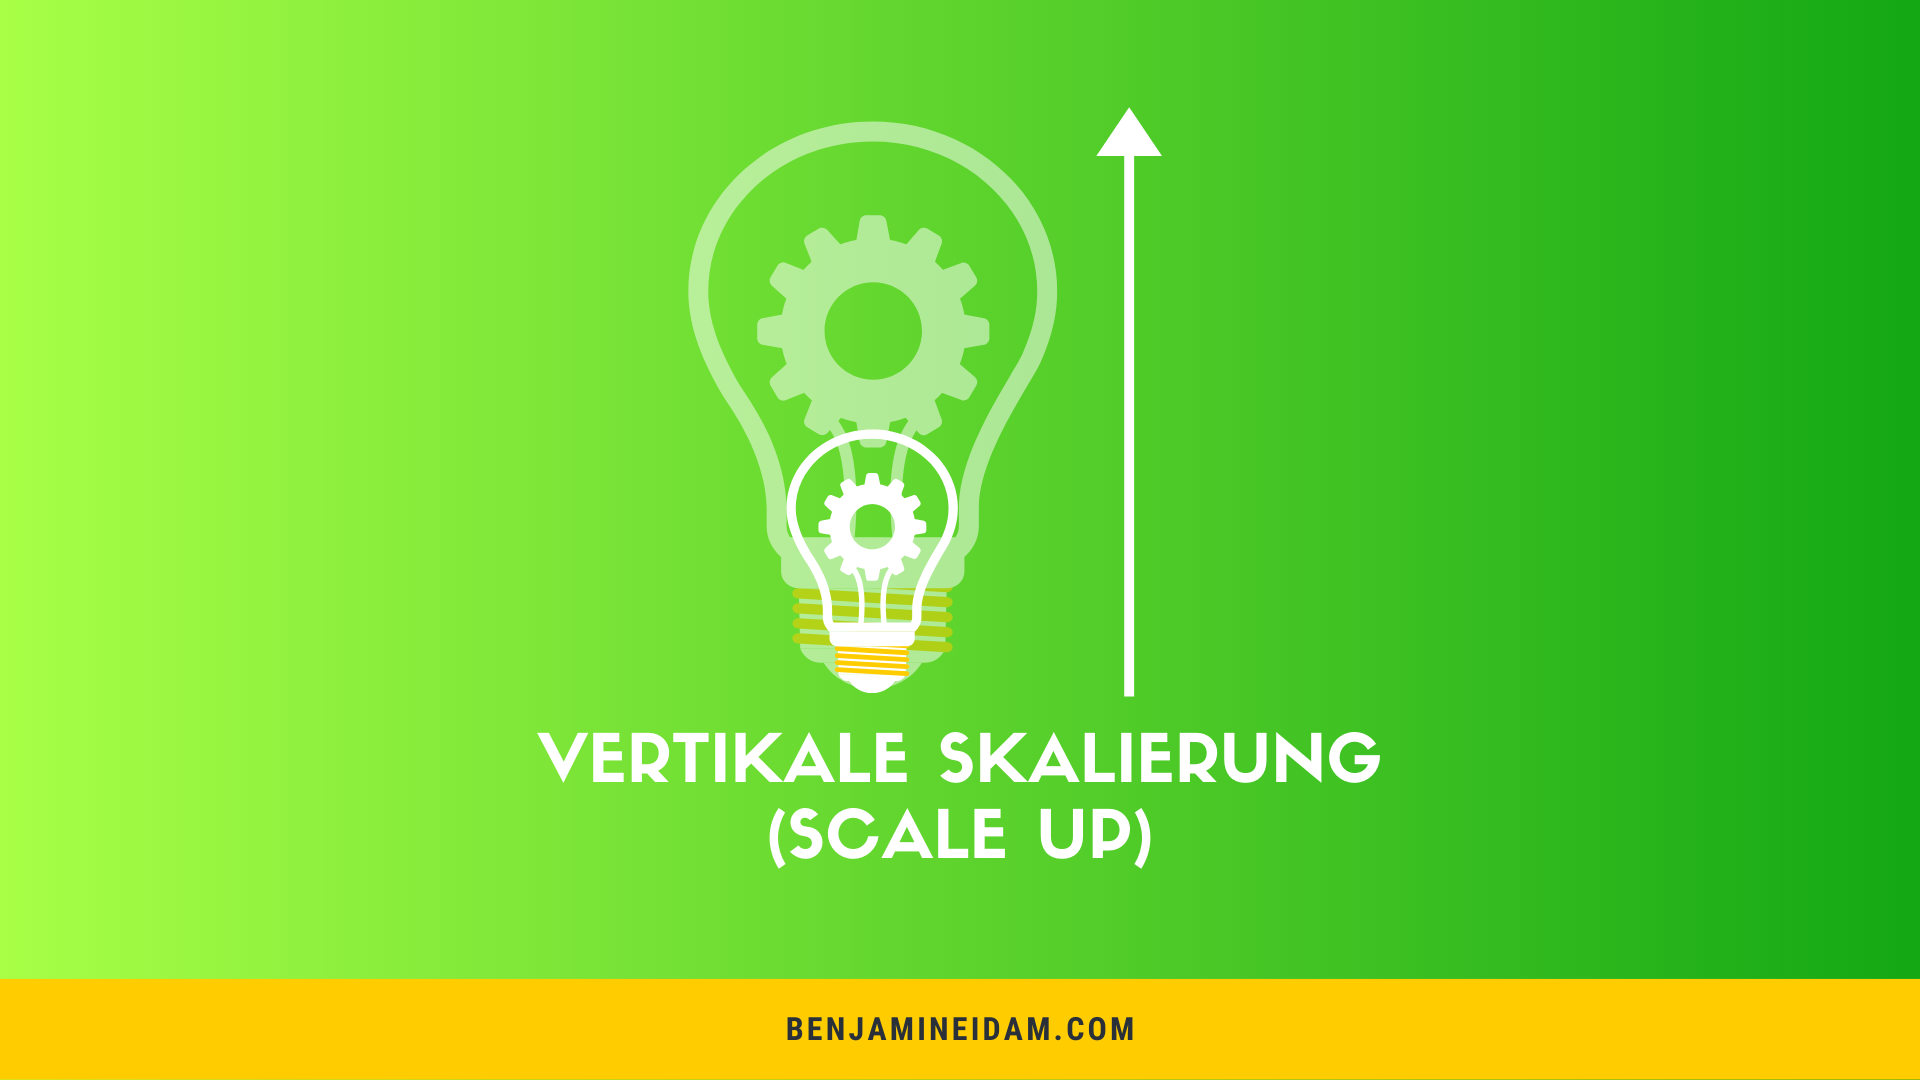 Vertikale Skalierbarkeit - Scale Up